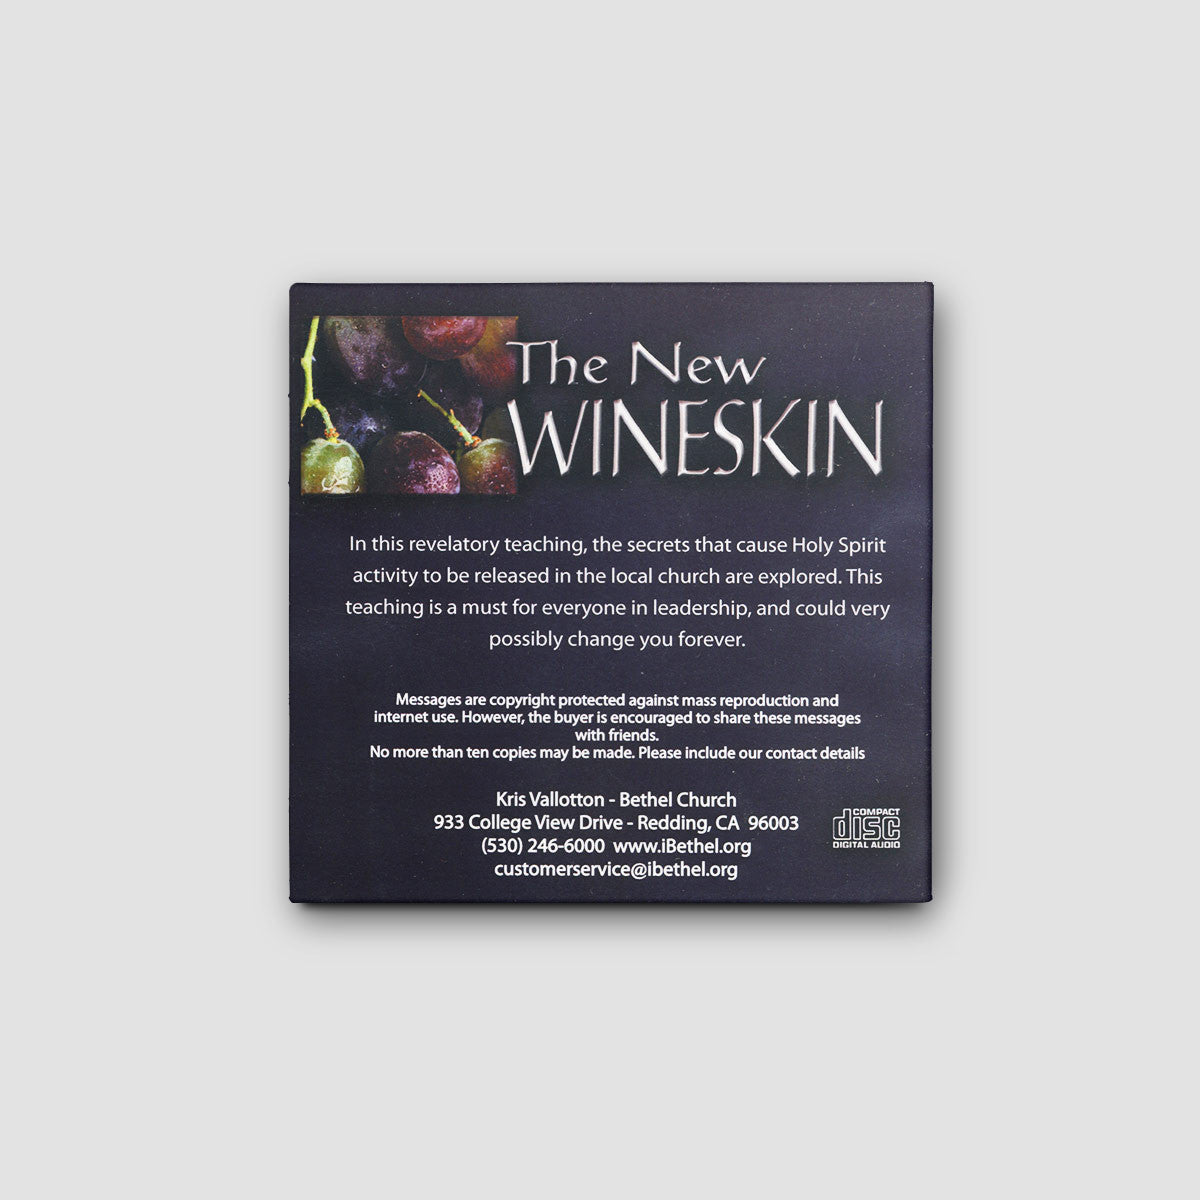 The New Wineskin